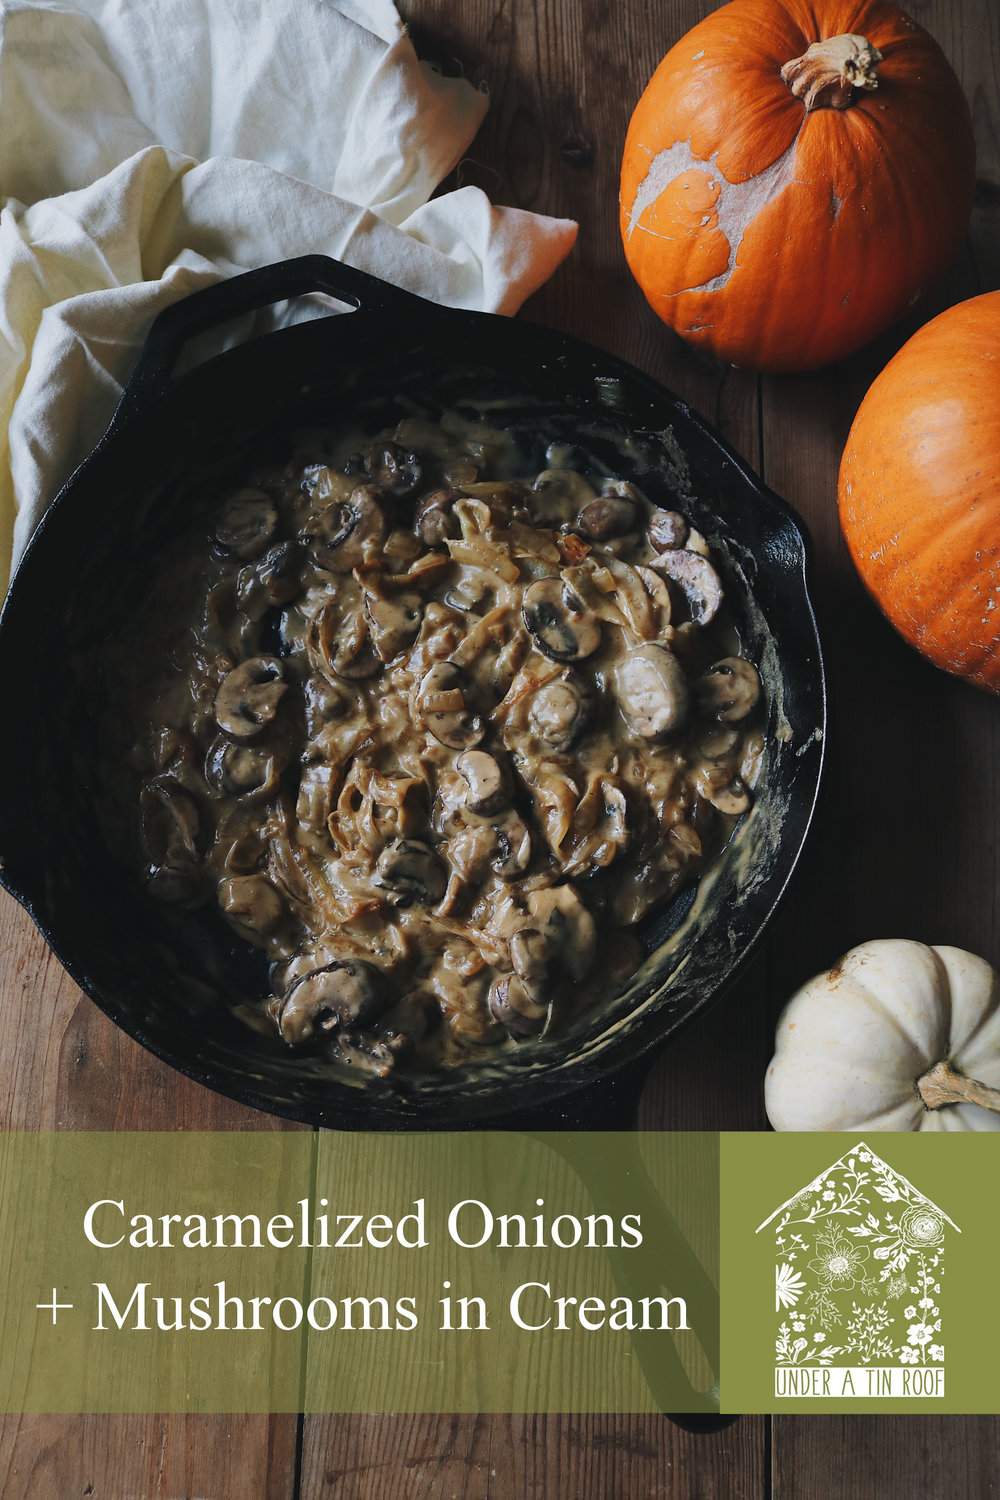 Colonial Kitchen | Mushrooms + Caramelized Onions in Cream - Under A Tin Roof Blog